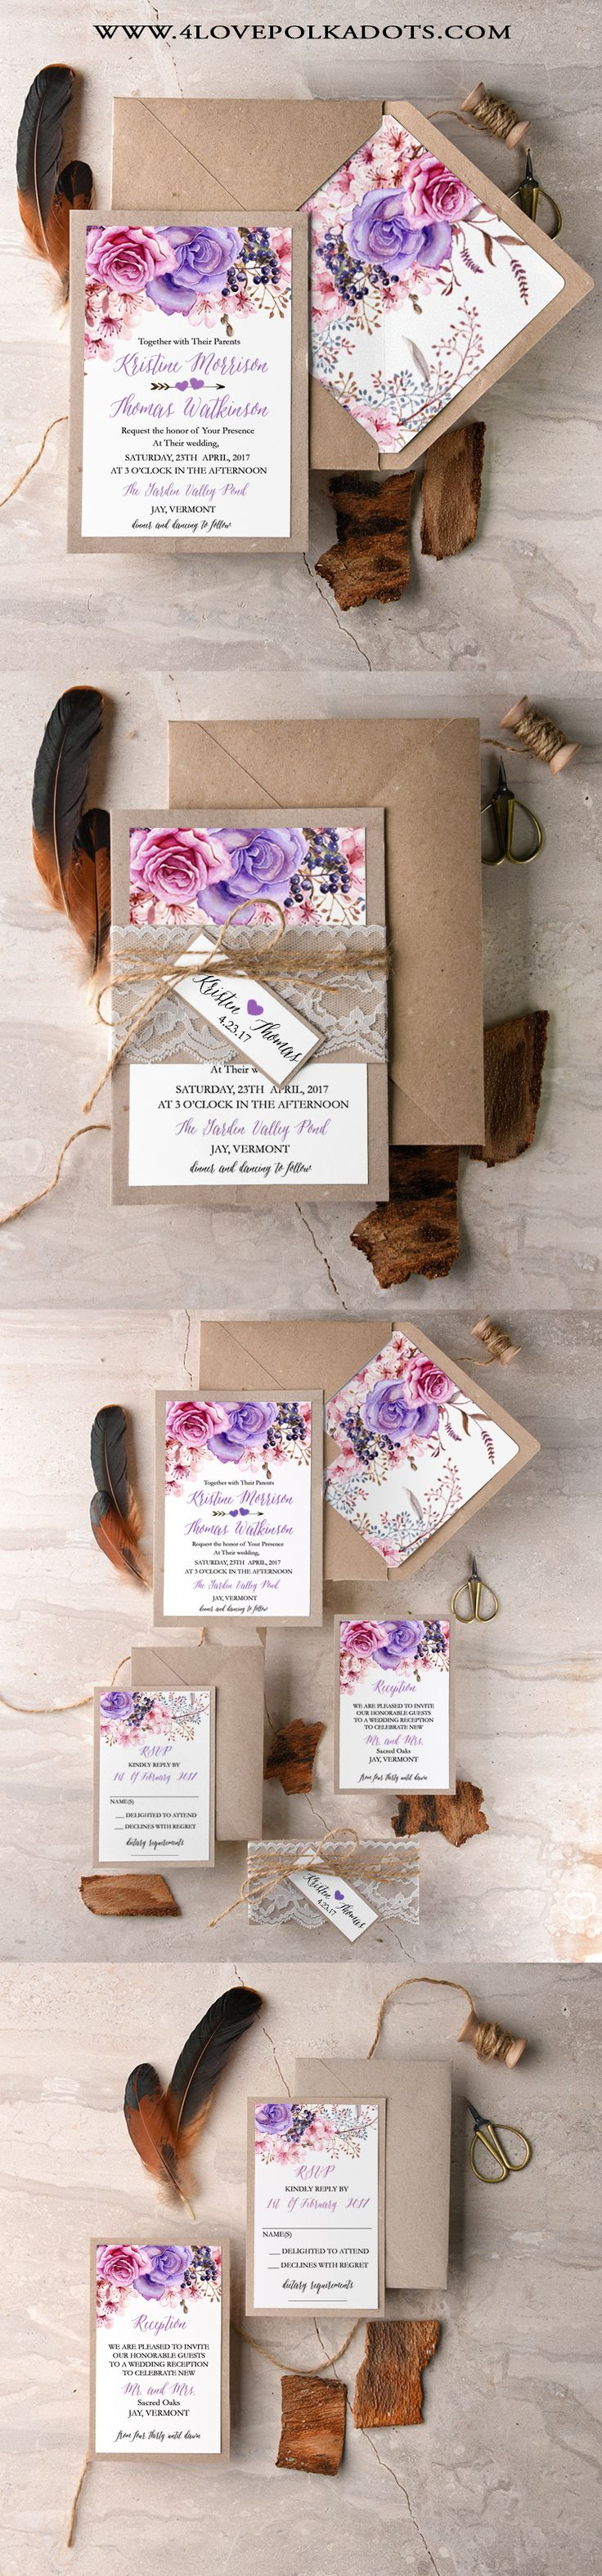 Boho Wedding Invitations - Lace & Twine, Eco Papers and colorful floral printing #boho #weddingideas #rusticwedding